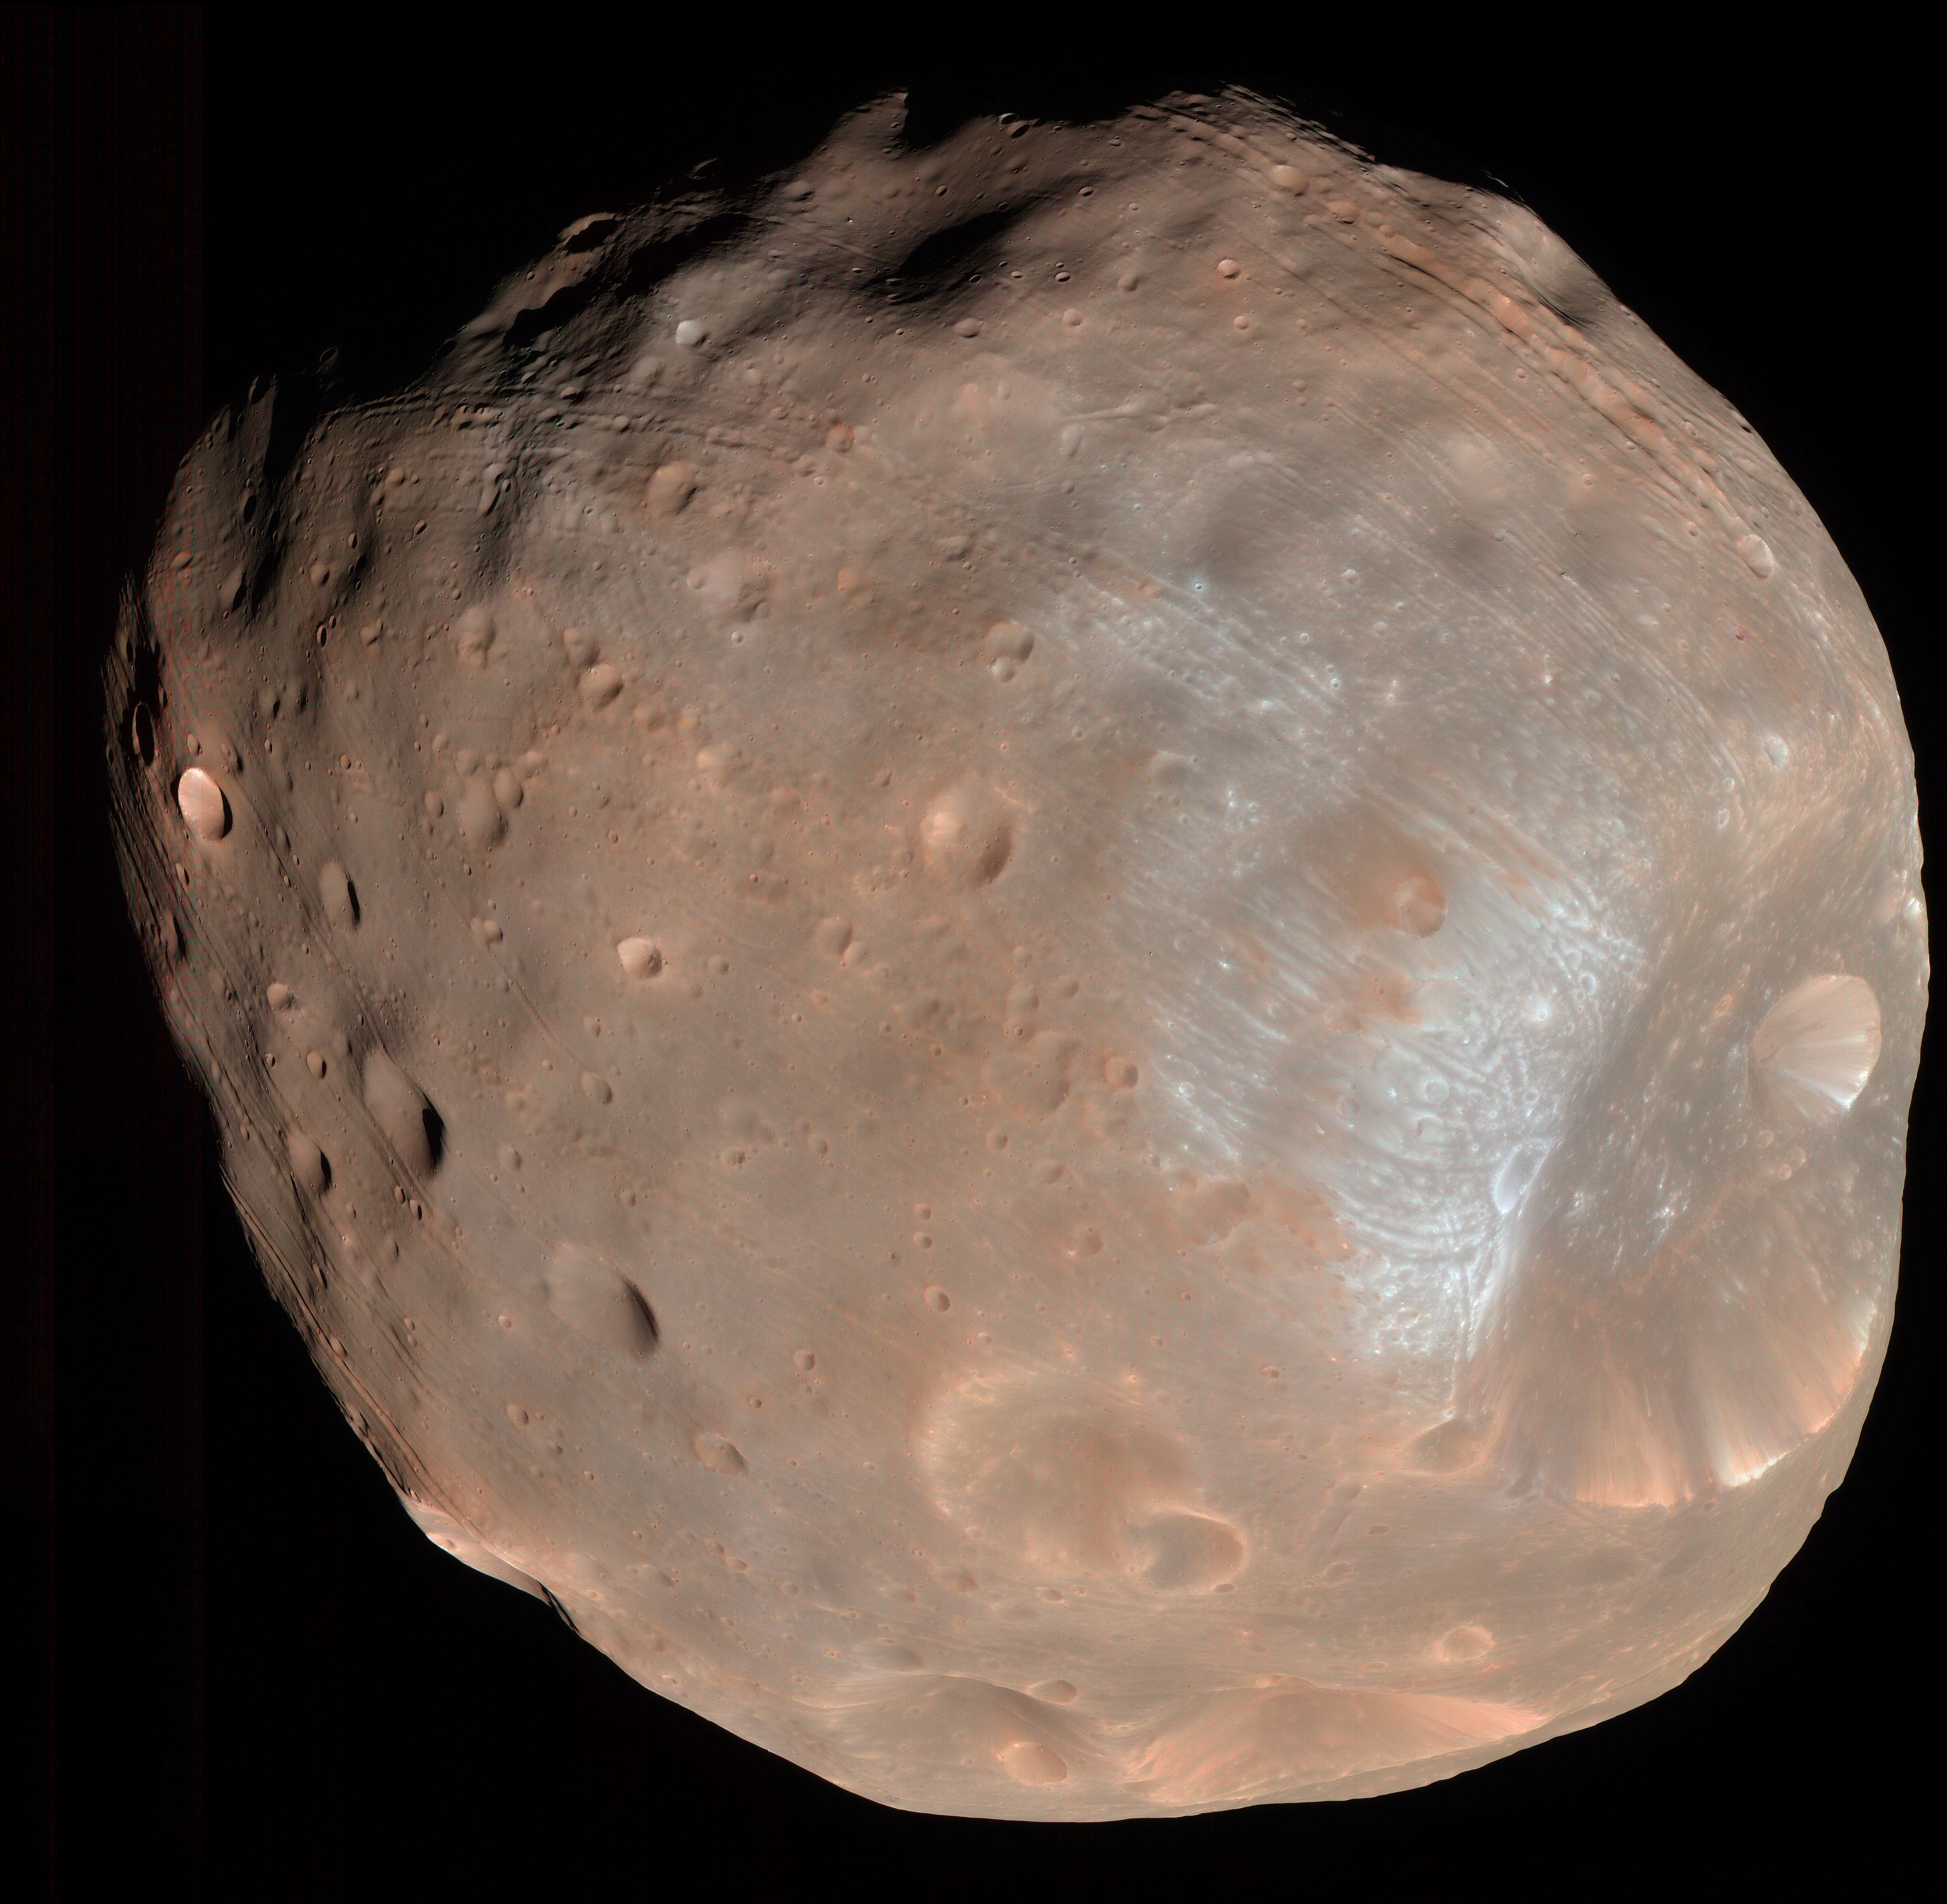 Phobos: Facts About the Doomed Martian Moon